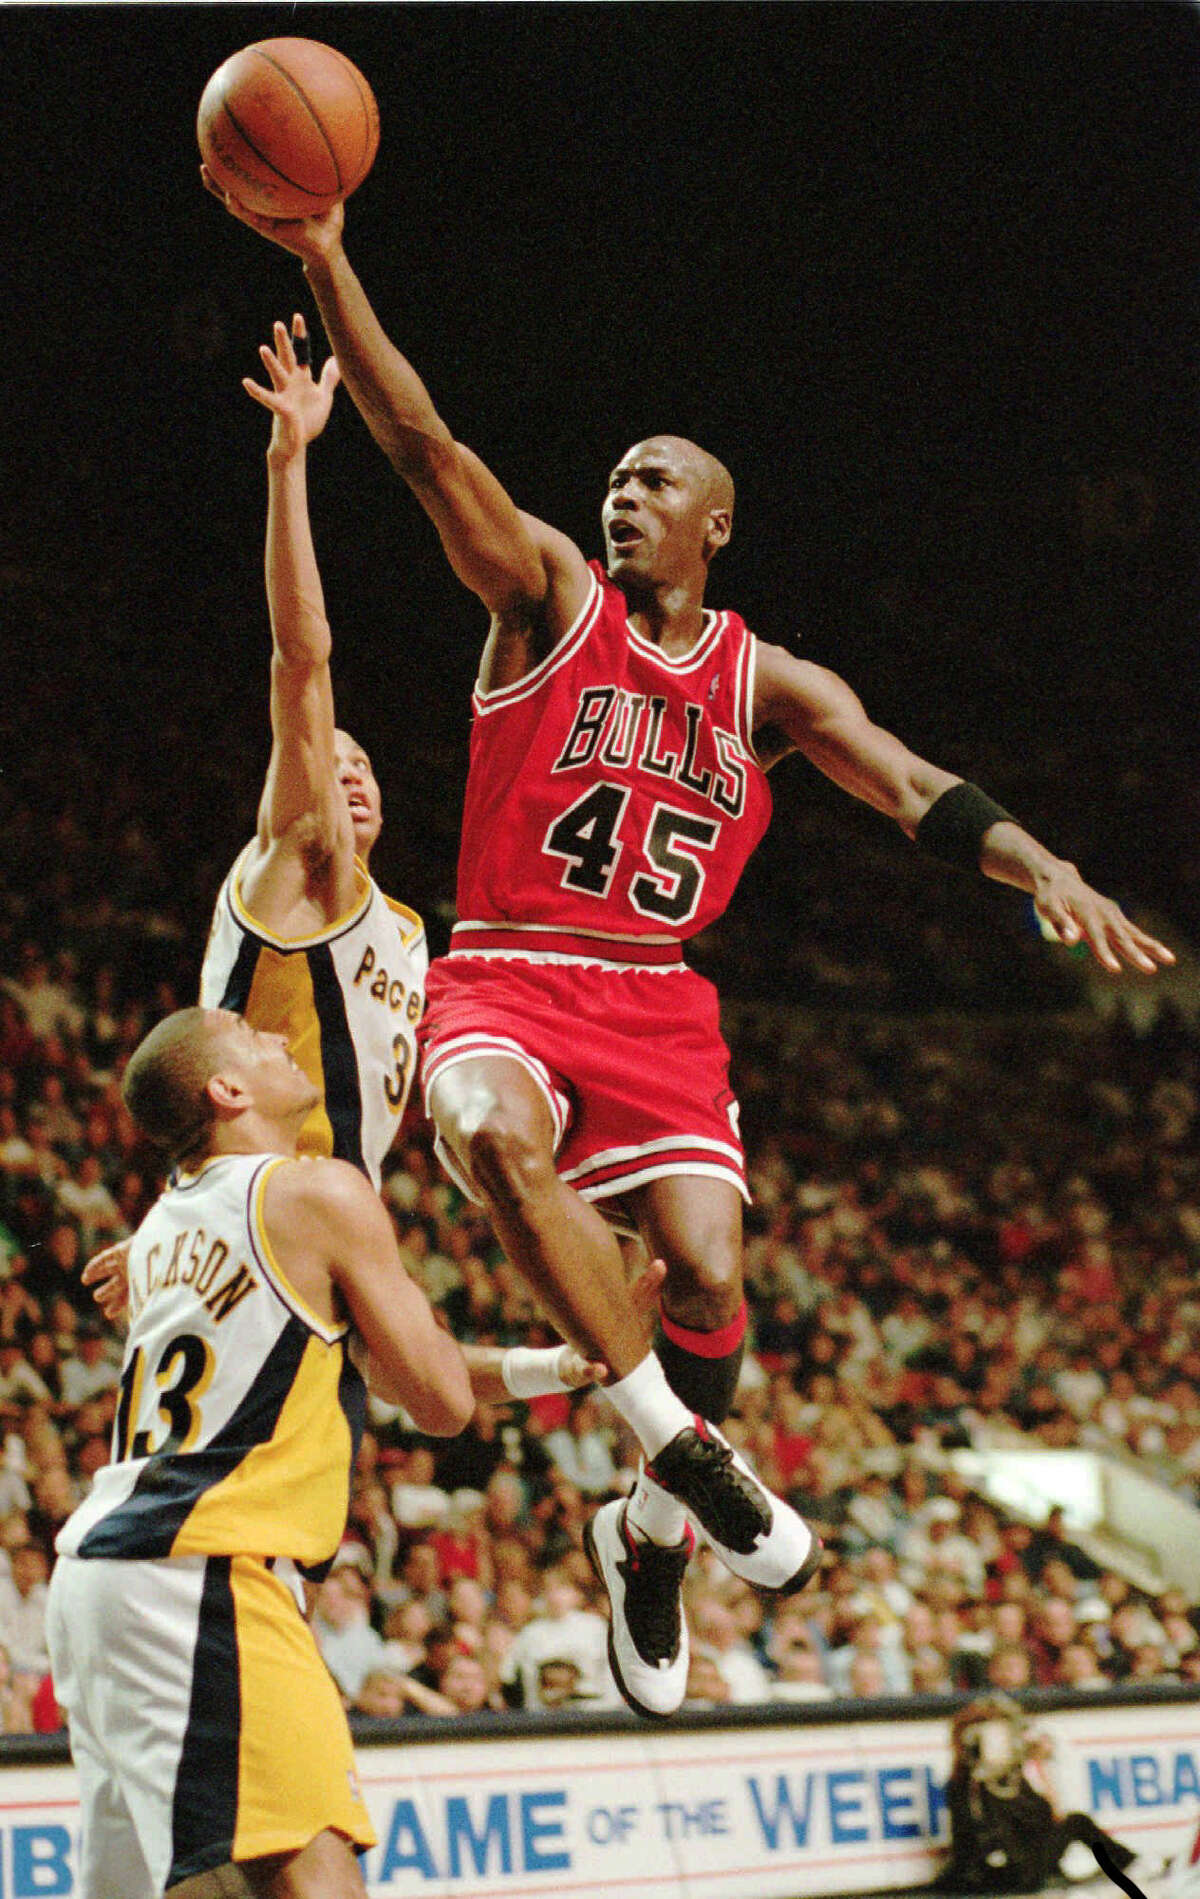 Jordan's Jordans - Michael Jordan wasn't the first pro athlete to have his own shoes, but he started the sneaker endorsement boom.